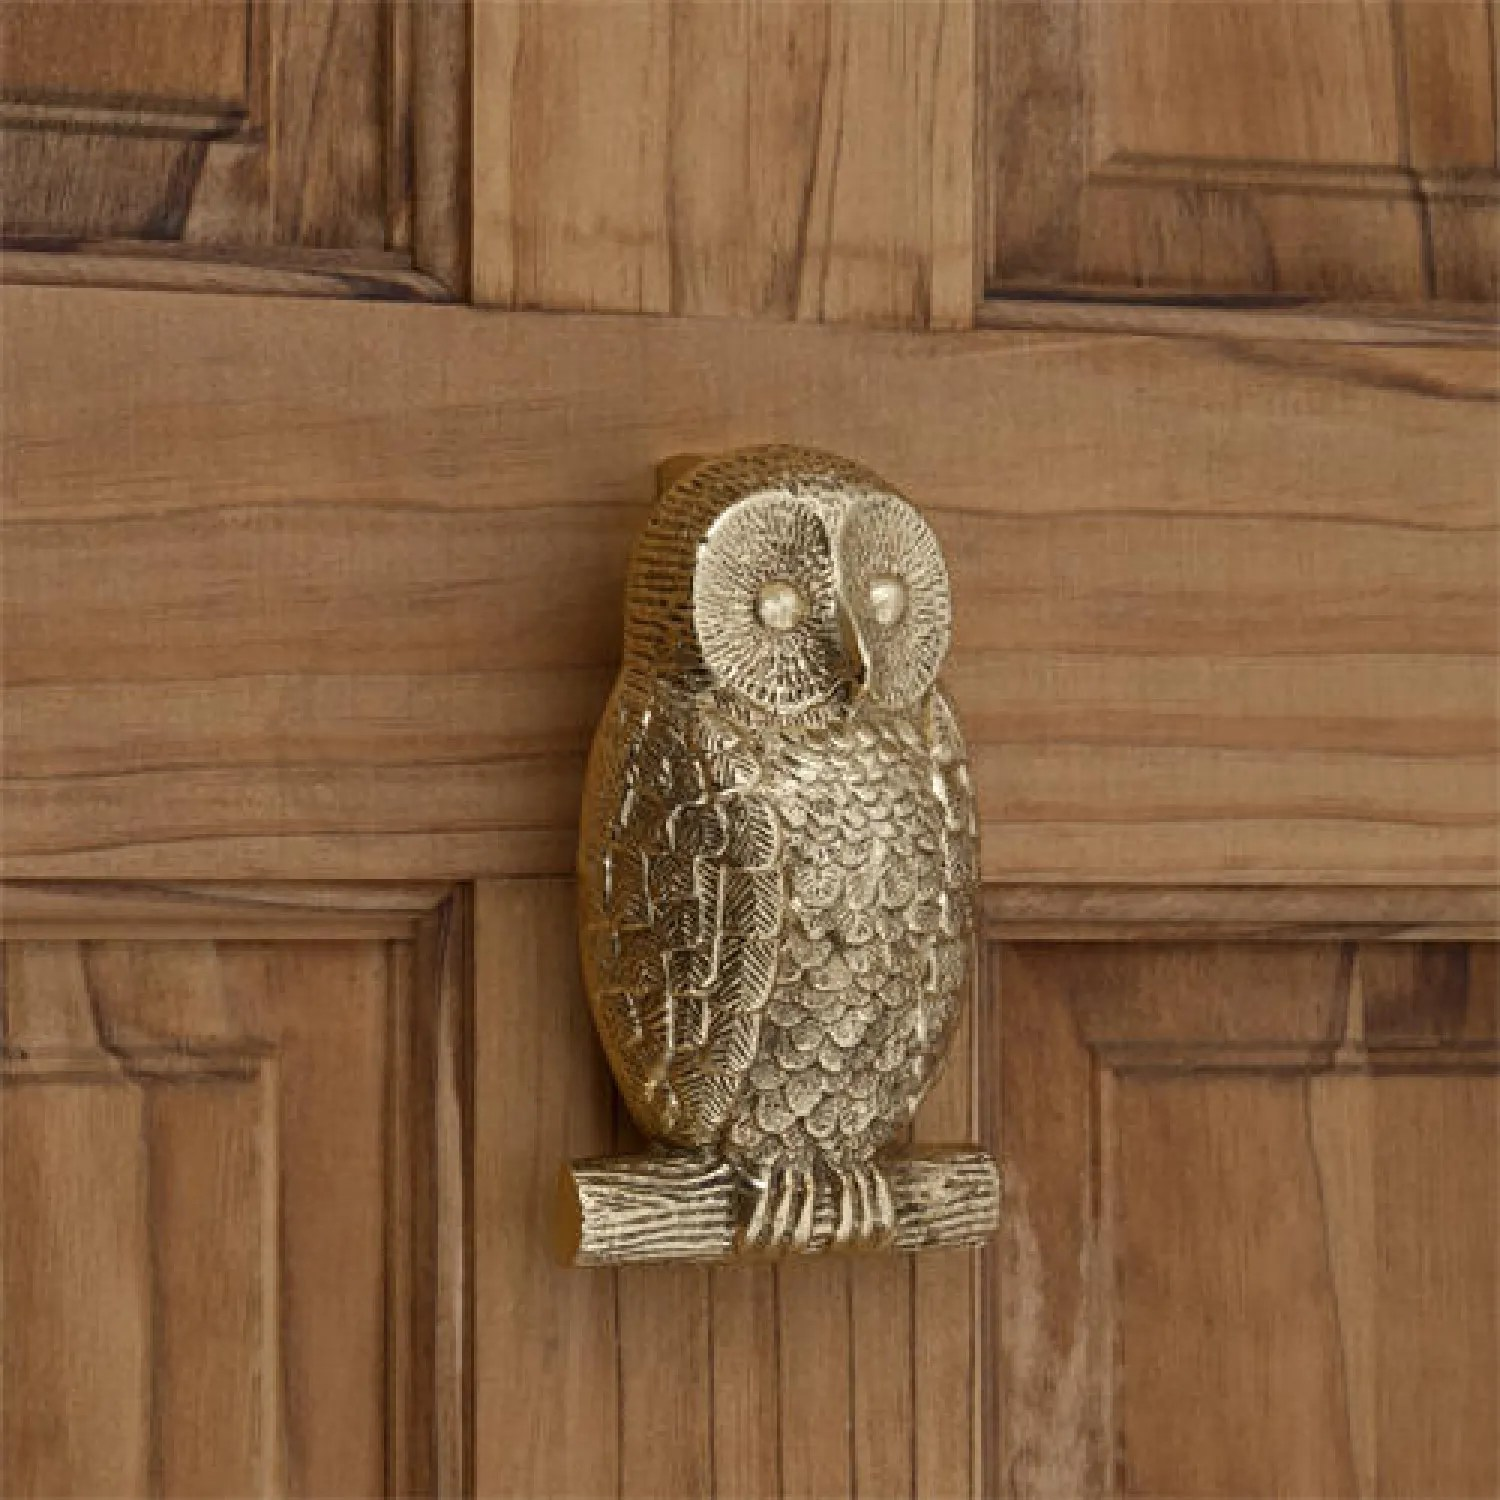 Owl Brass Door Knocker  Hardware